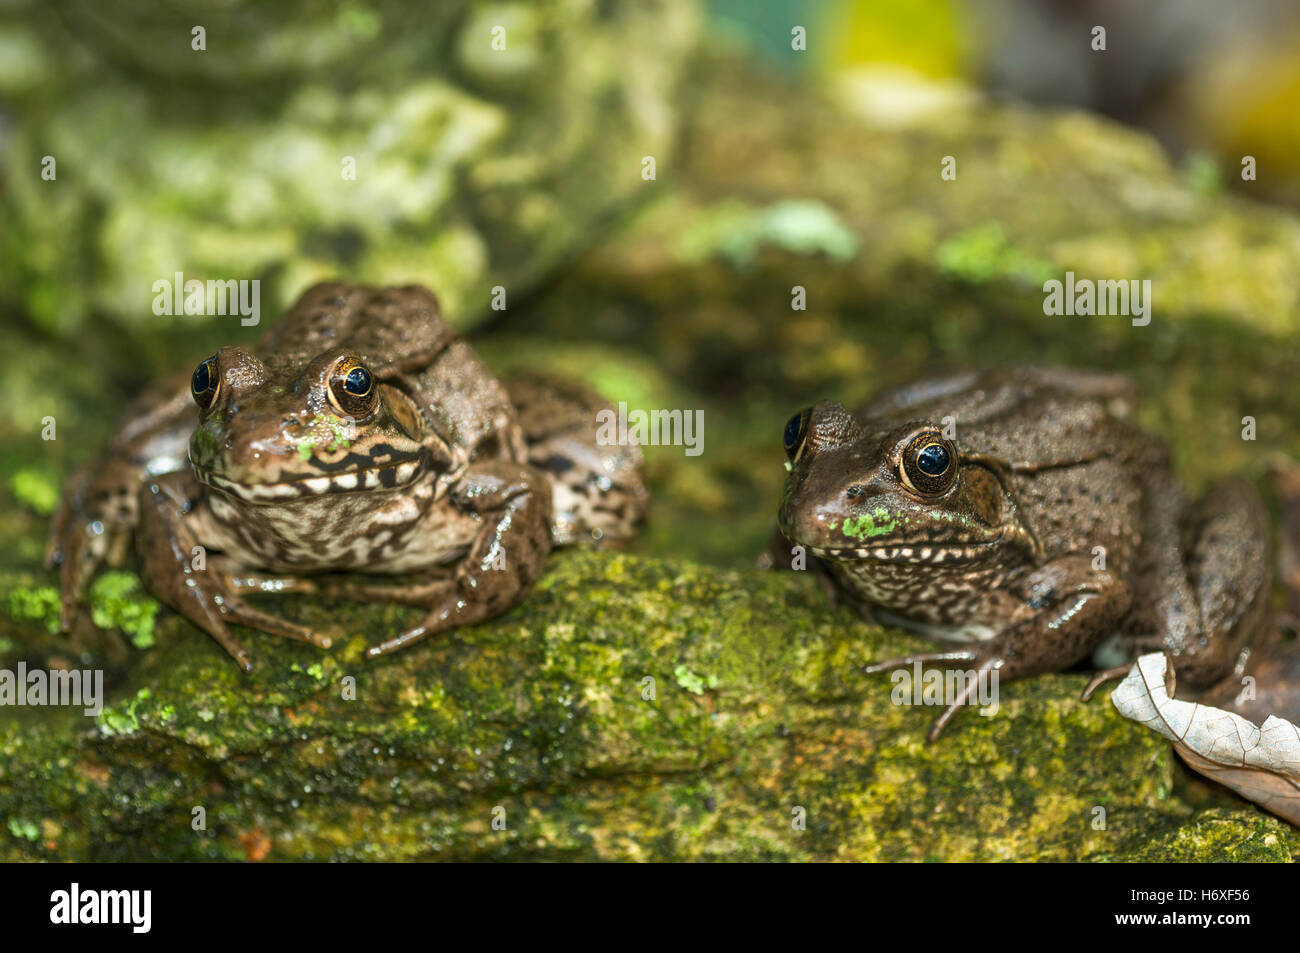 Le sud de grenouille léopard (Lithobates sphenocephalus). New York, États-Unis. Photo Stock